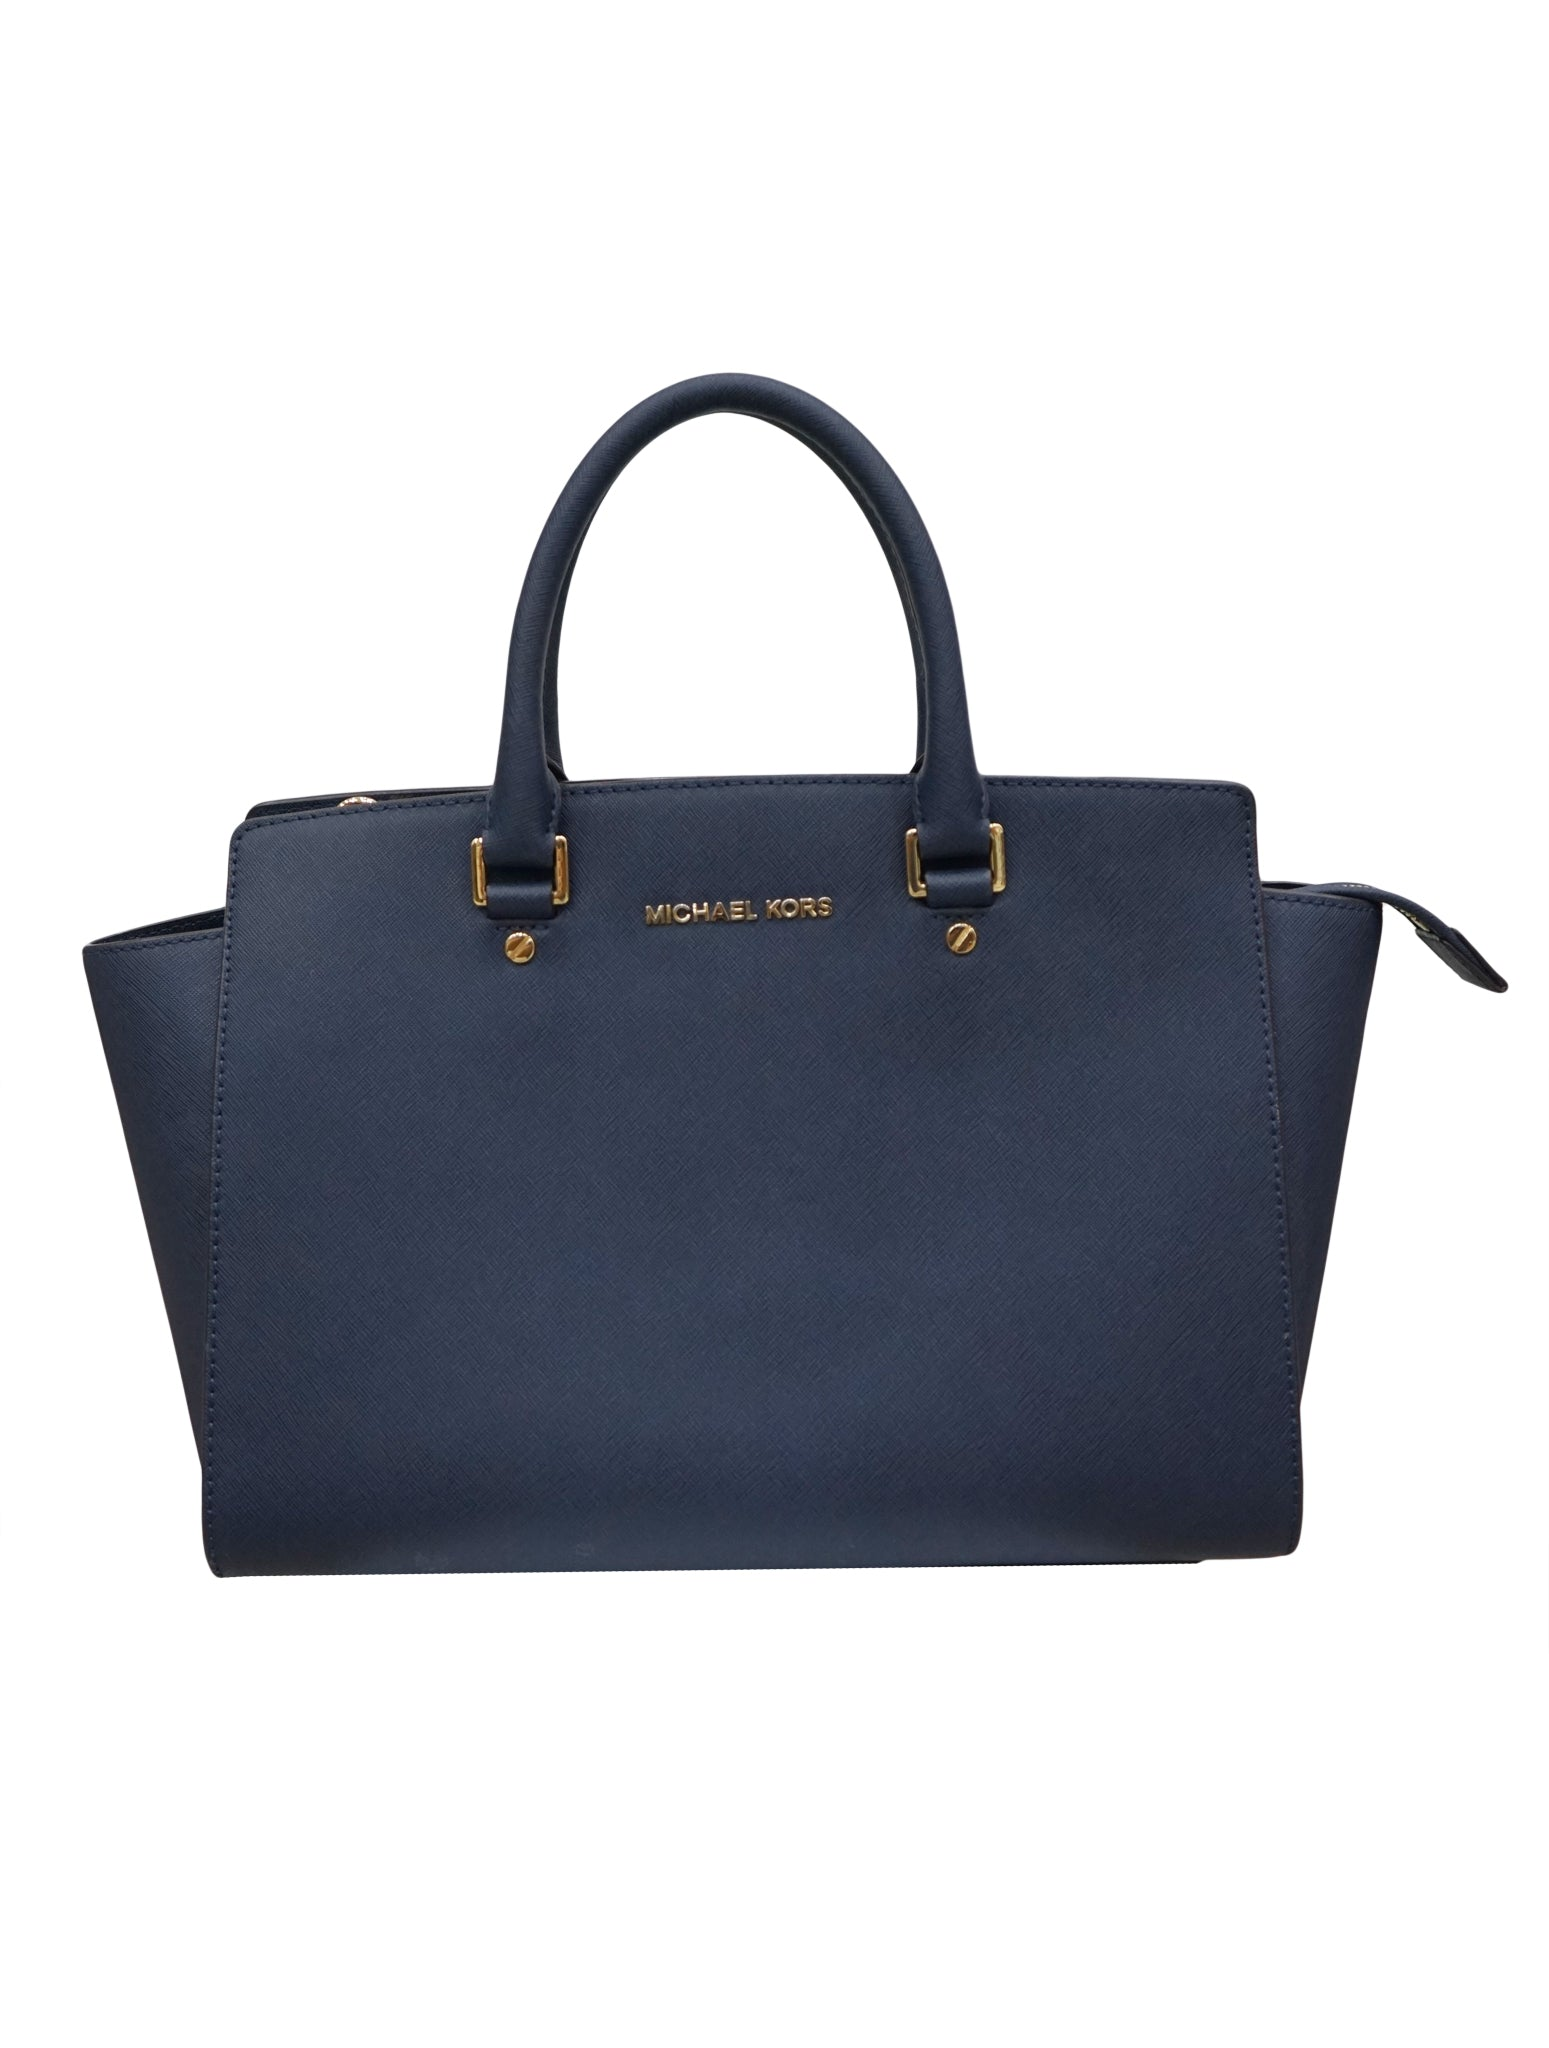 NAVY SAFFIANO LEATHER MEDIUM SELMA